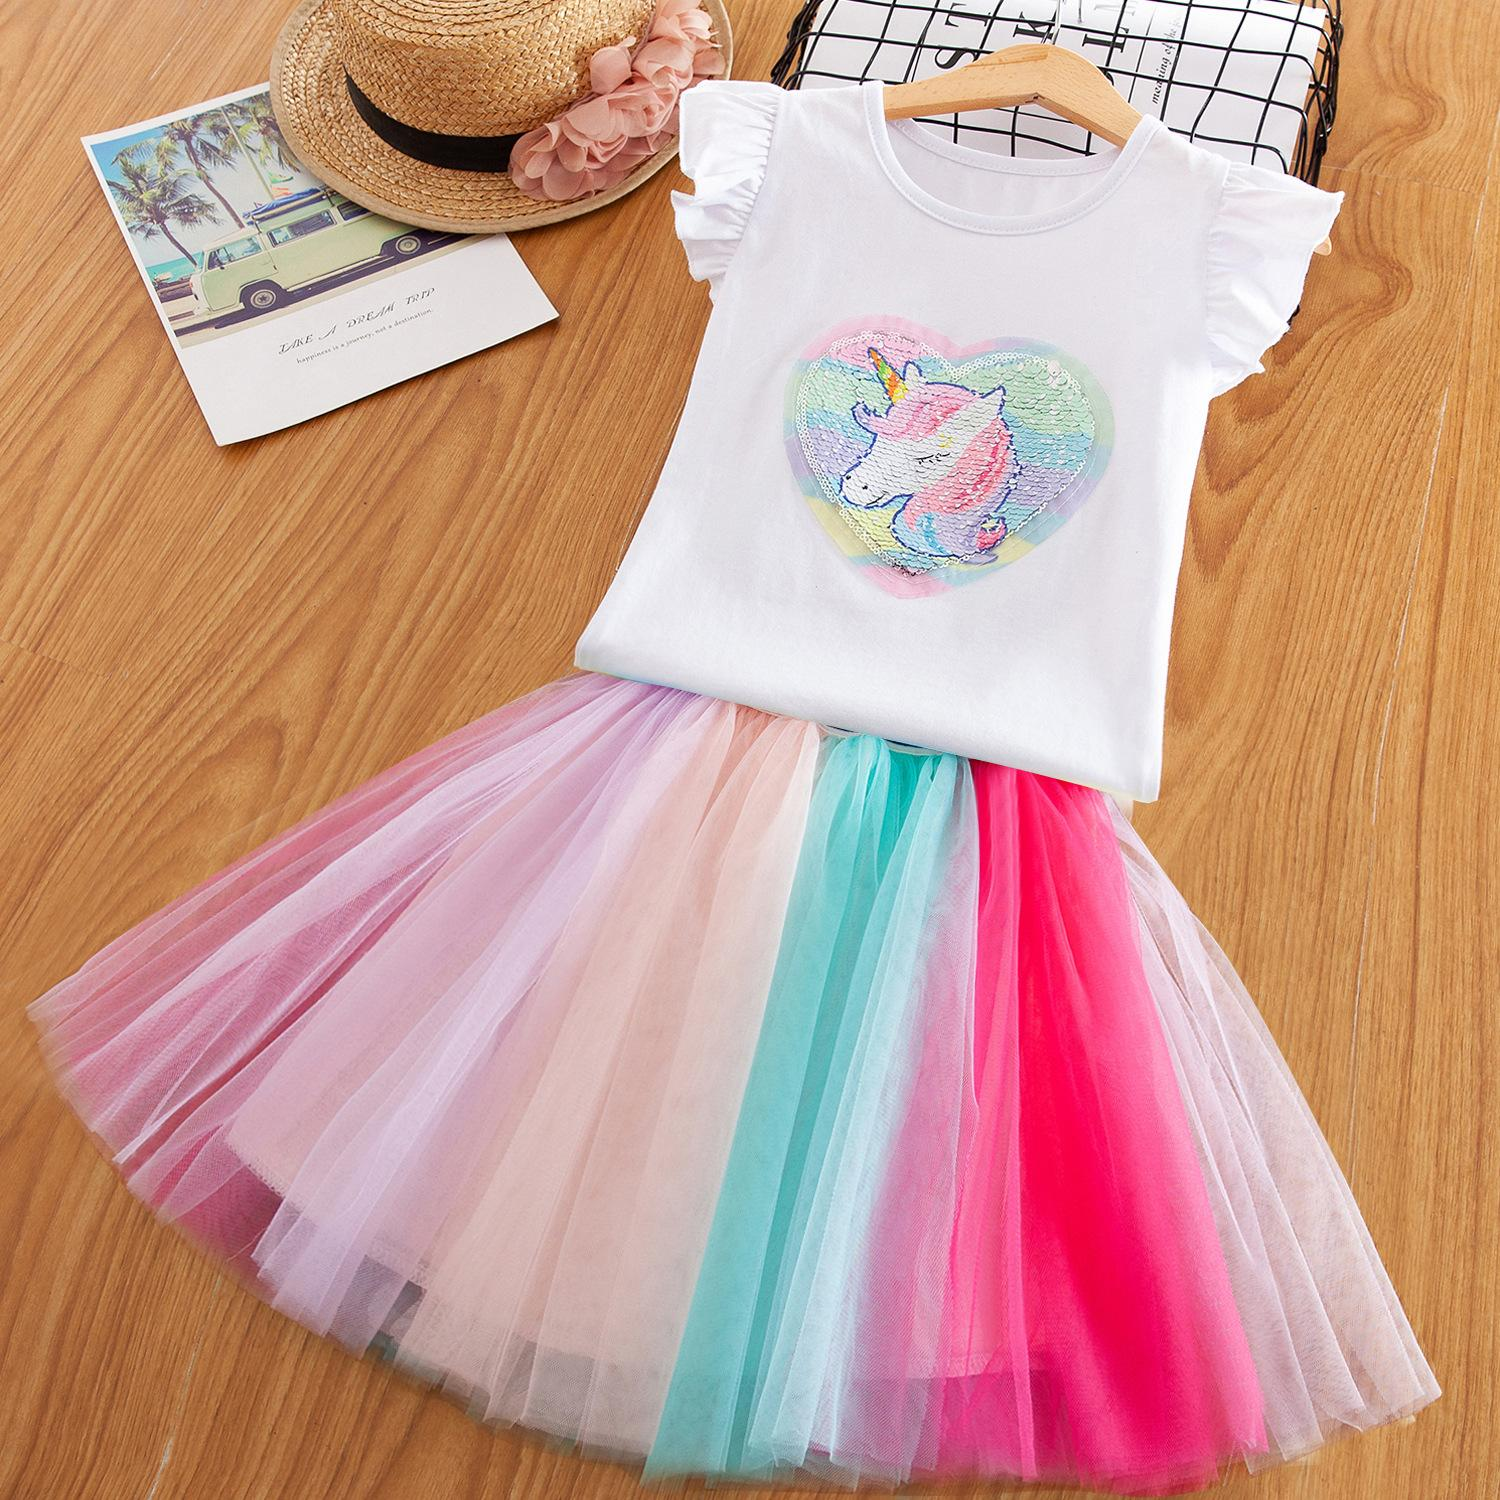 9c1877bae878d 2019 Baby Girls Unicorn Outfits Dress Children T Shirts+TuTu Rainbow Skirts  2019 Summer Fashion Boutique Kids Dress Clothing 7 Styles B1 From Anibaby,  ...